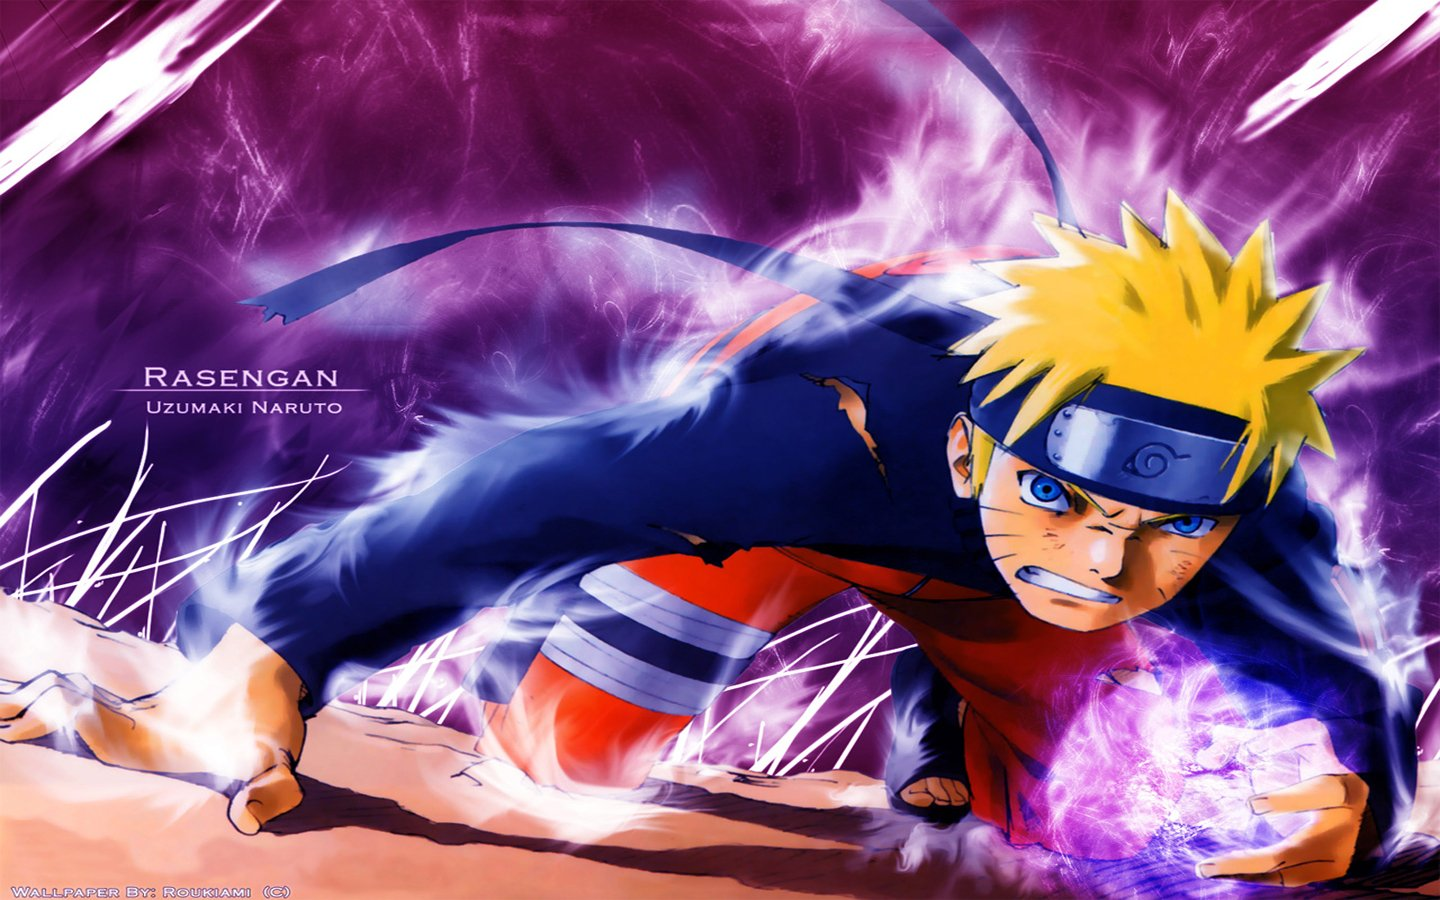 Download the Naruto anime wallpaper titled Naruto Rasengan 1440x900